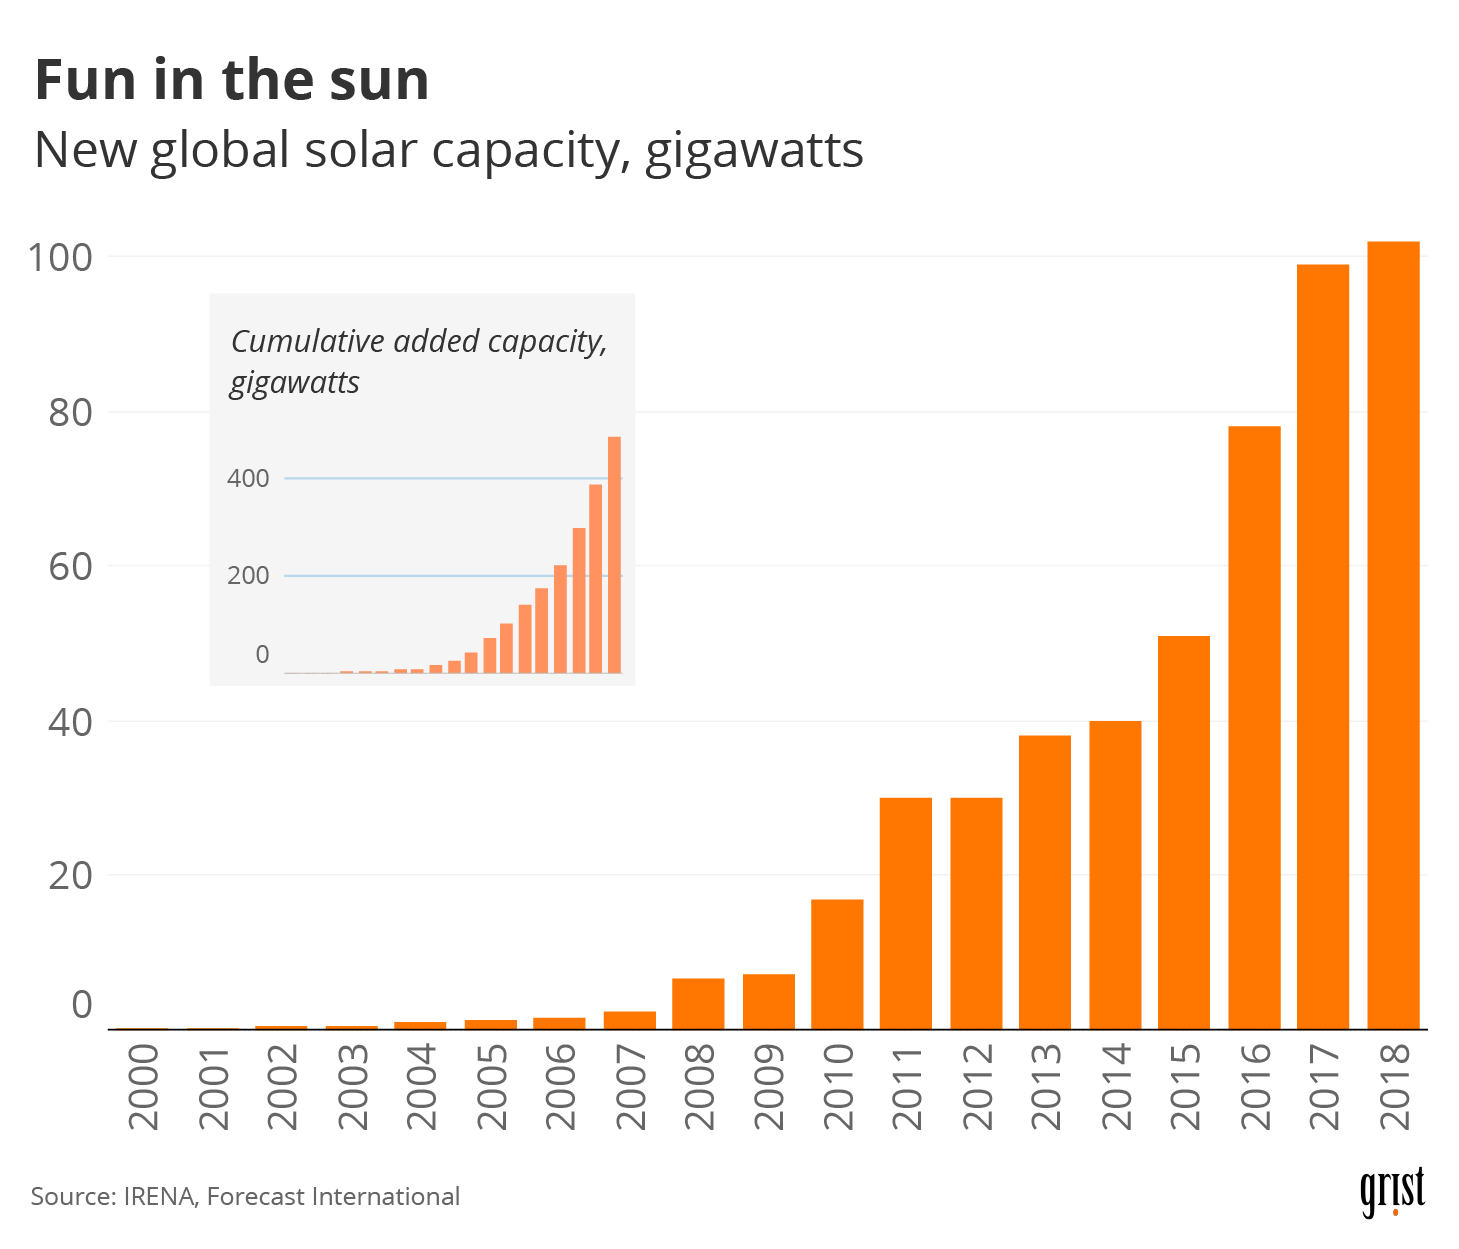 A chart showing the new global solar capacity, gigawatts